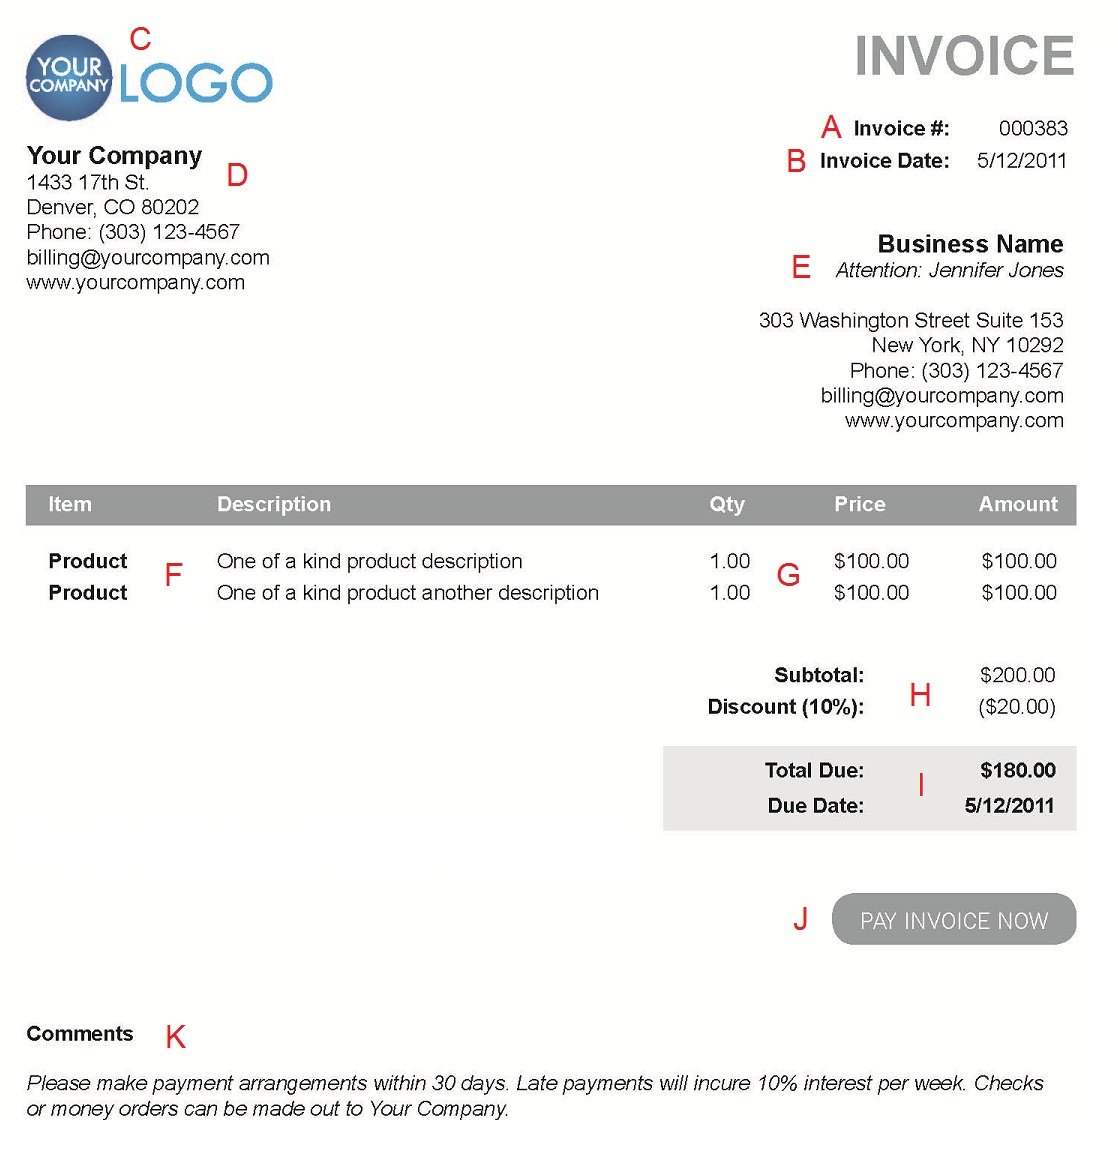 Coolmathgamesus  Stunning The  Different Sections Of An Electronic Payment Invoice With Magnificent A  With Divine Invoicing Solution Also Car Rental Invoice Sample In Addition Rent A Car Invoice And Adjusted Invoice As Well As Invoice Auditing Additionally Standard Payment Terms For Invoices From Paysimplecom With Coolmathgamesus  Magnificent The  Different Sections Of An Electronic Payment Invoice With Divine A  And Stunning Invoicing Solution Also Car Rental Invoice Sample In Addition Rent A Car Invoice From Paysimplecom